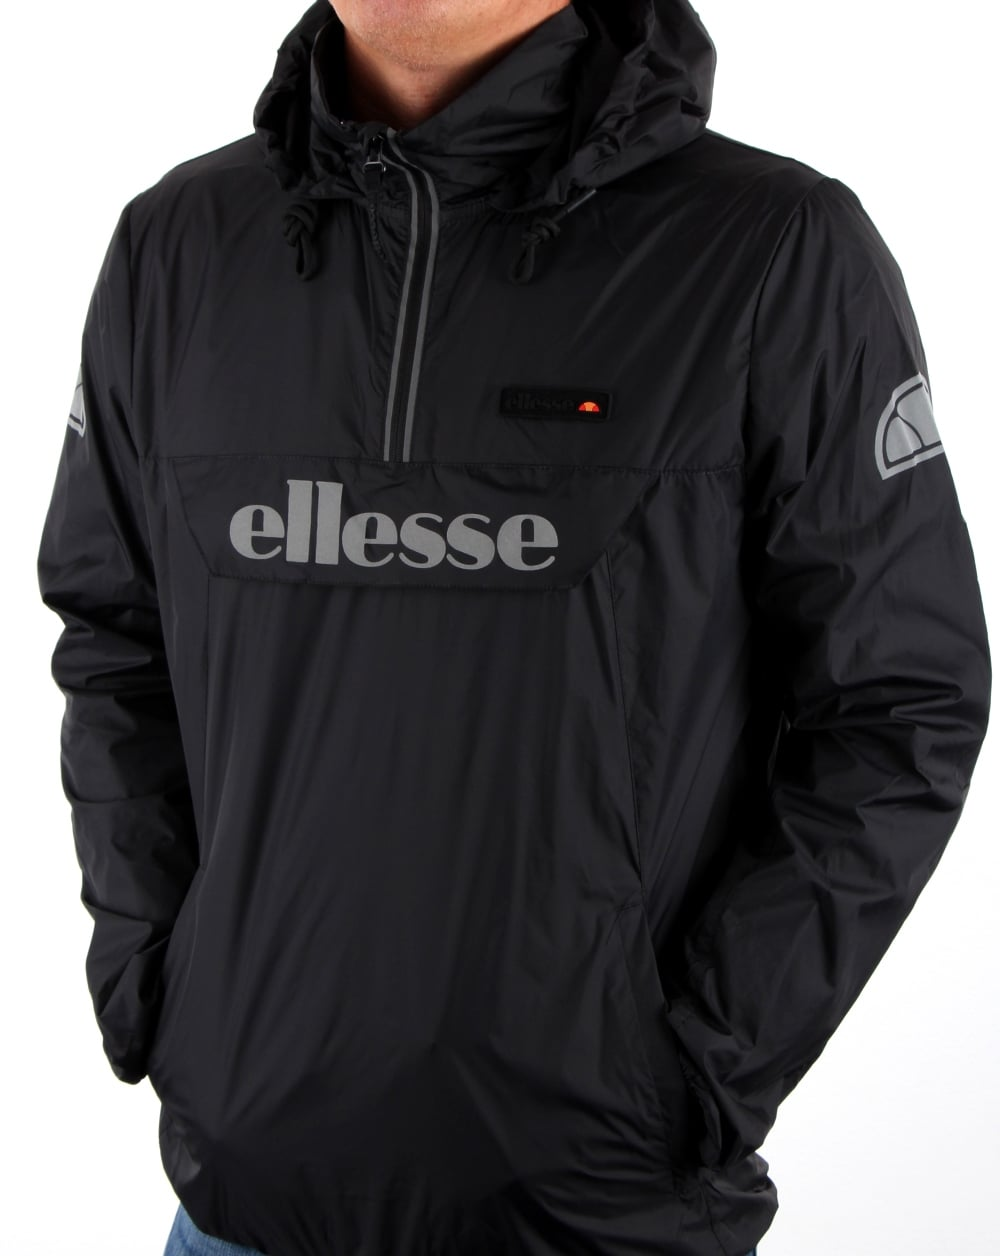 7ddb2162b Ellesse Ion Half Zip Jacket Black,Men's, Coat, Windrunner, Windbreaker